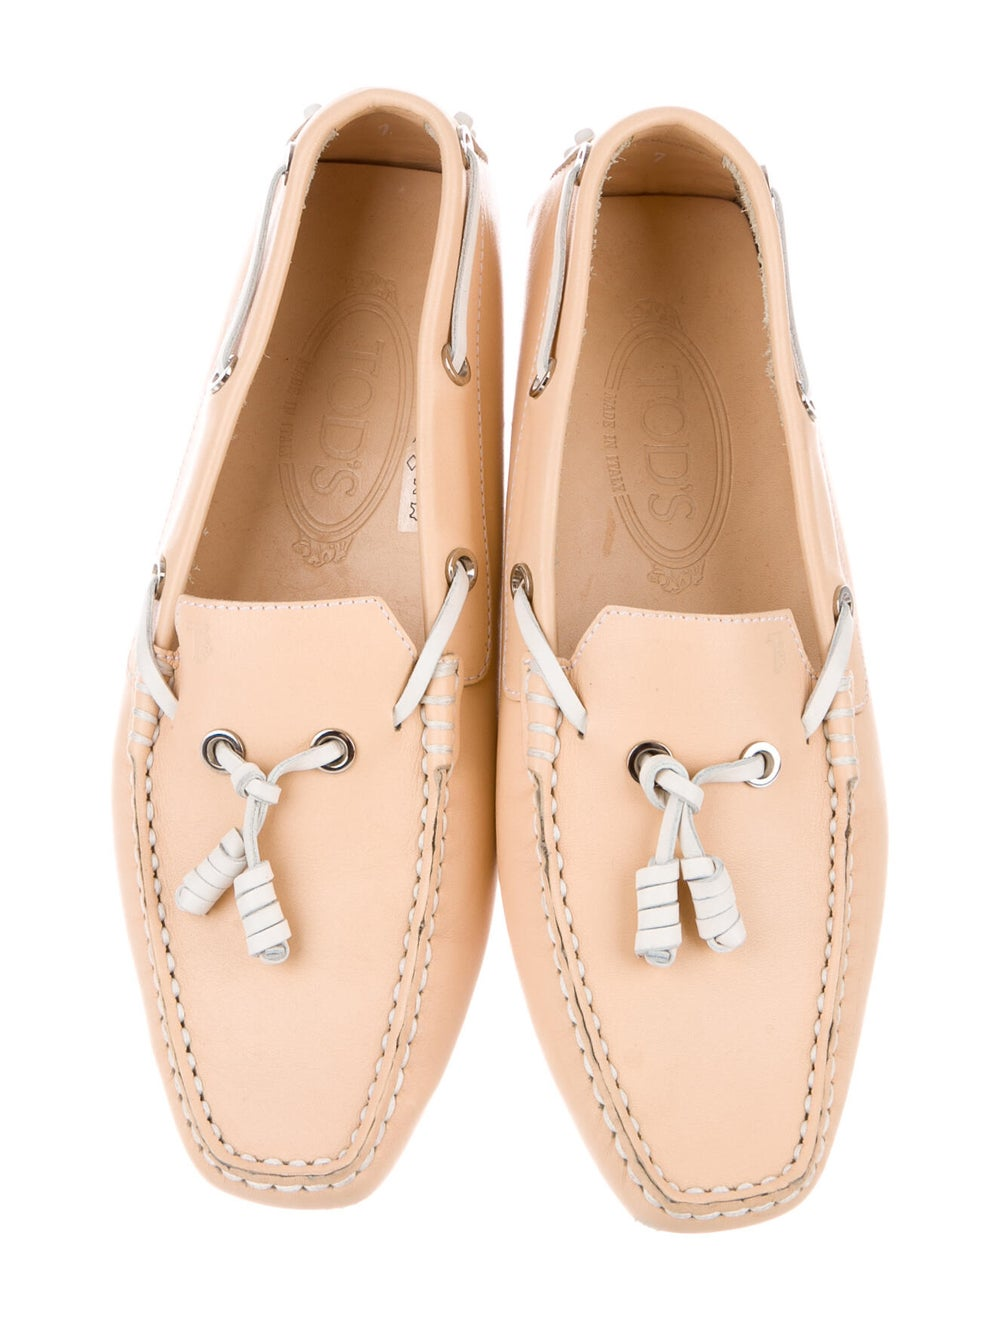 Tod's Leather Loafers - image 3